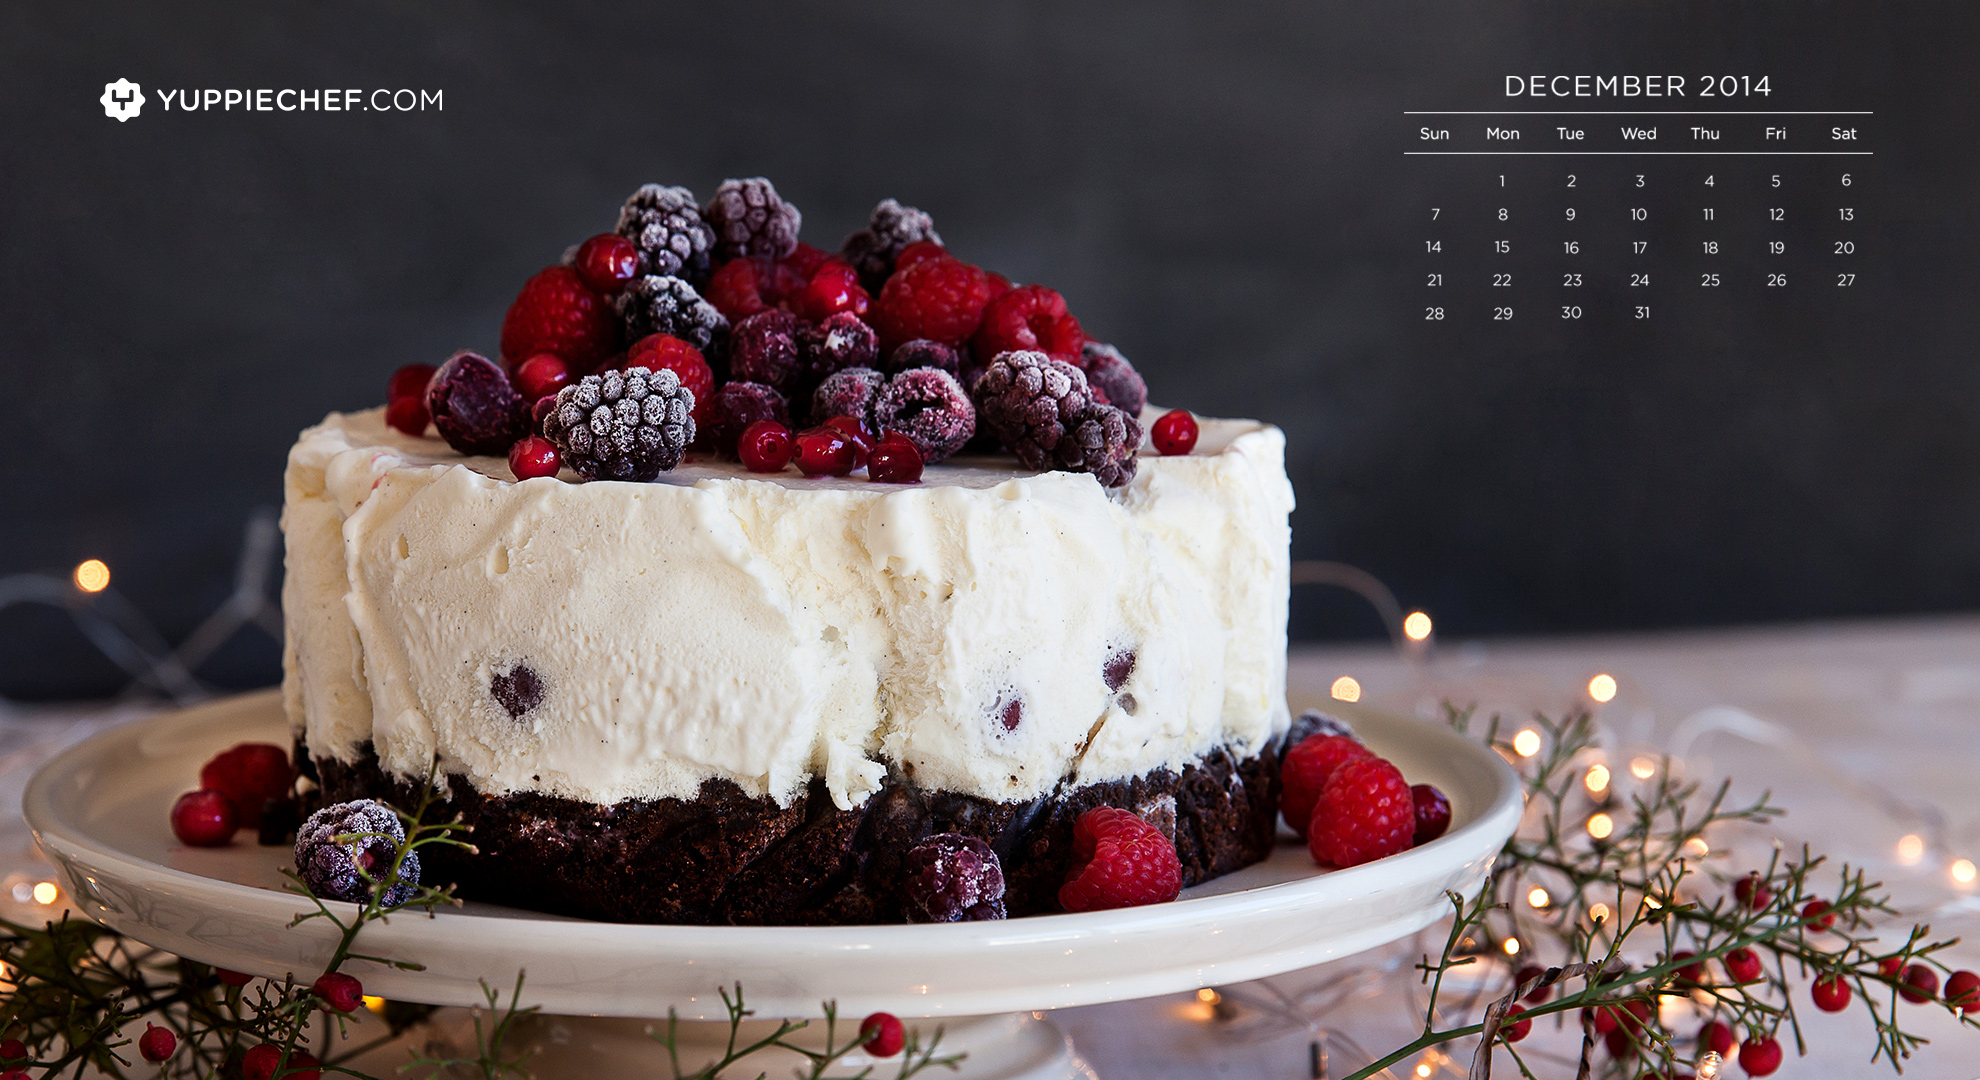 Ice Cream Cake Hd Images : A feast for the eyes: black forest ice cream cake